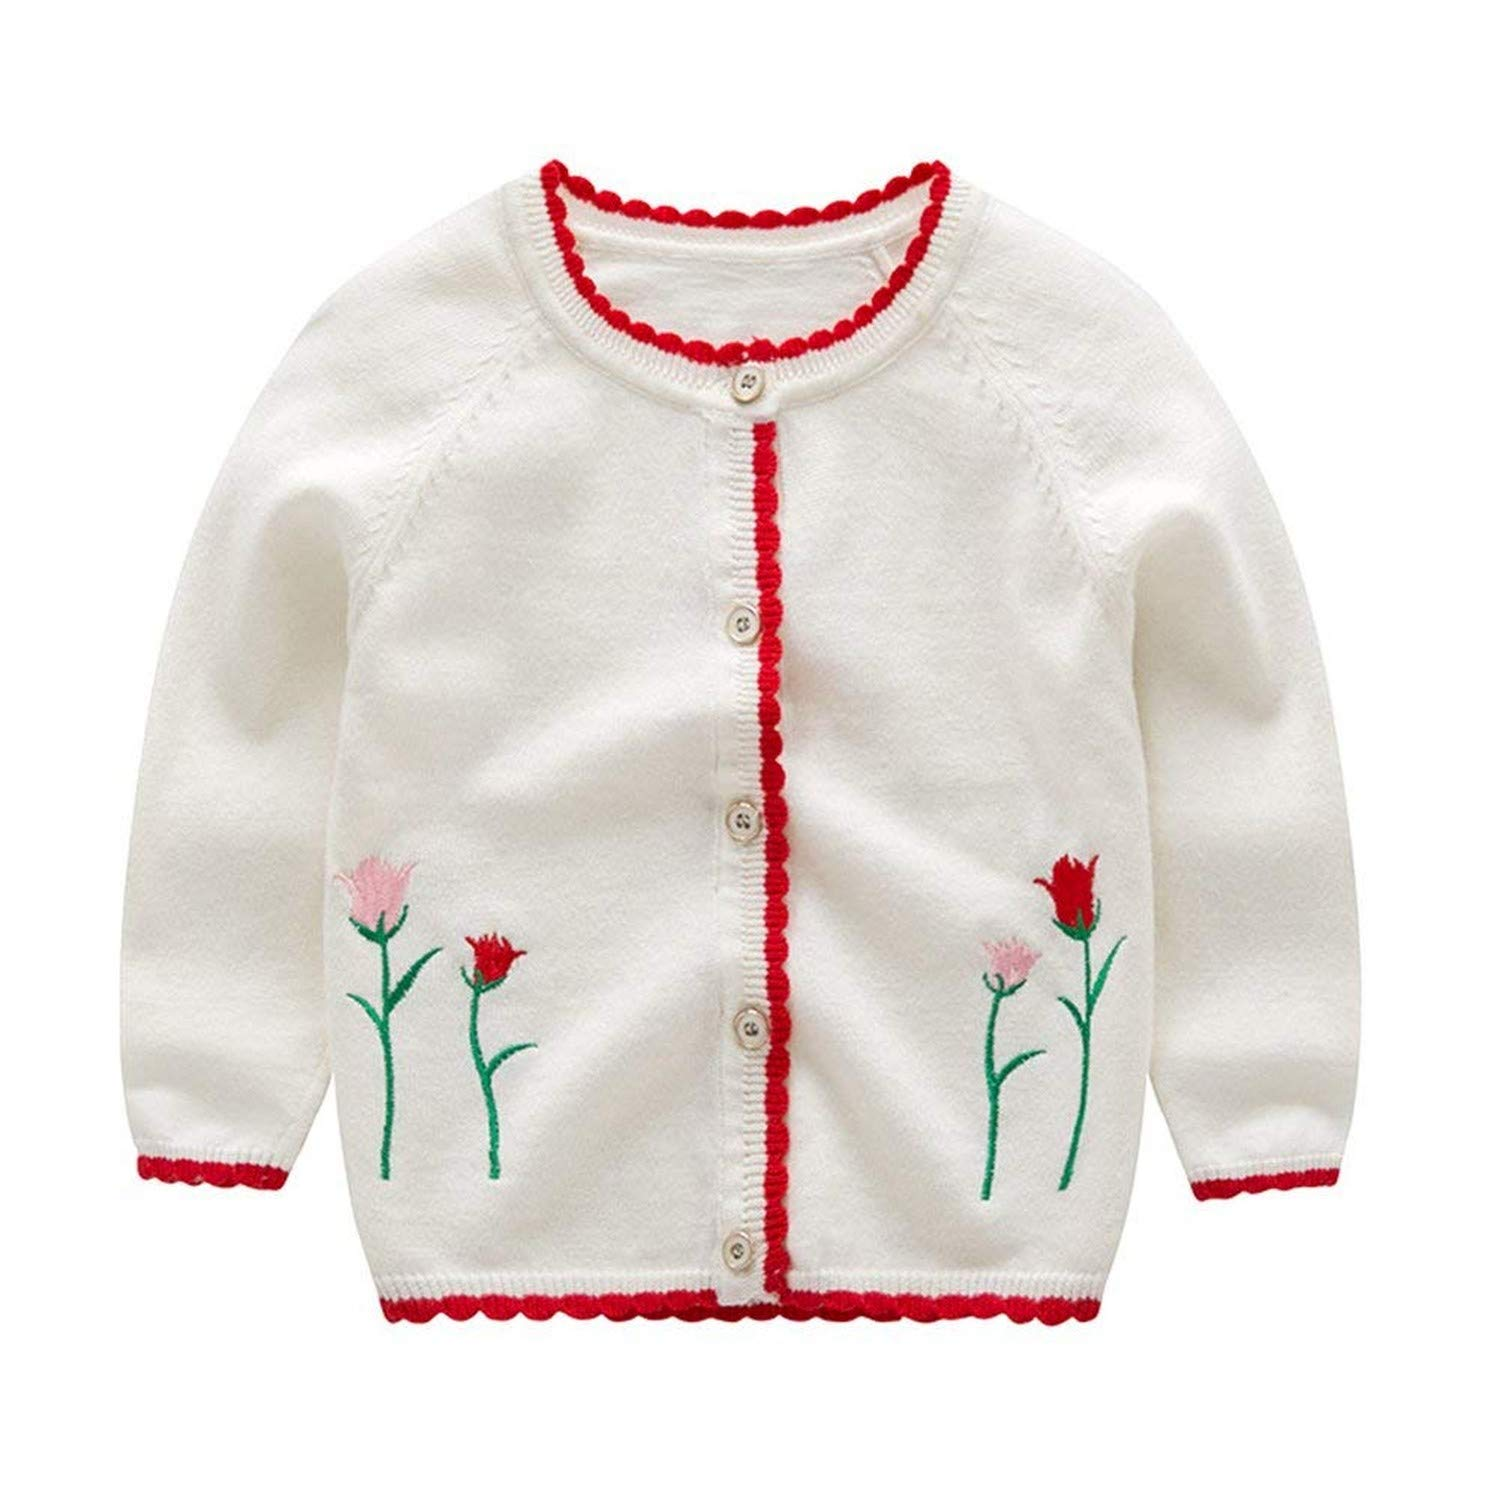 Carlos Foushee Toddler Girls Cute Warm Knitted Cardigan Embroidery Sweater Flower